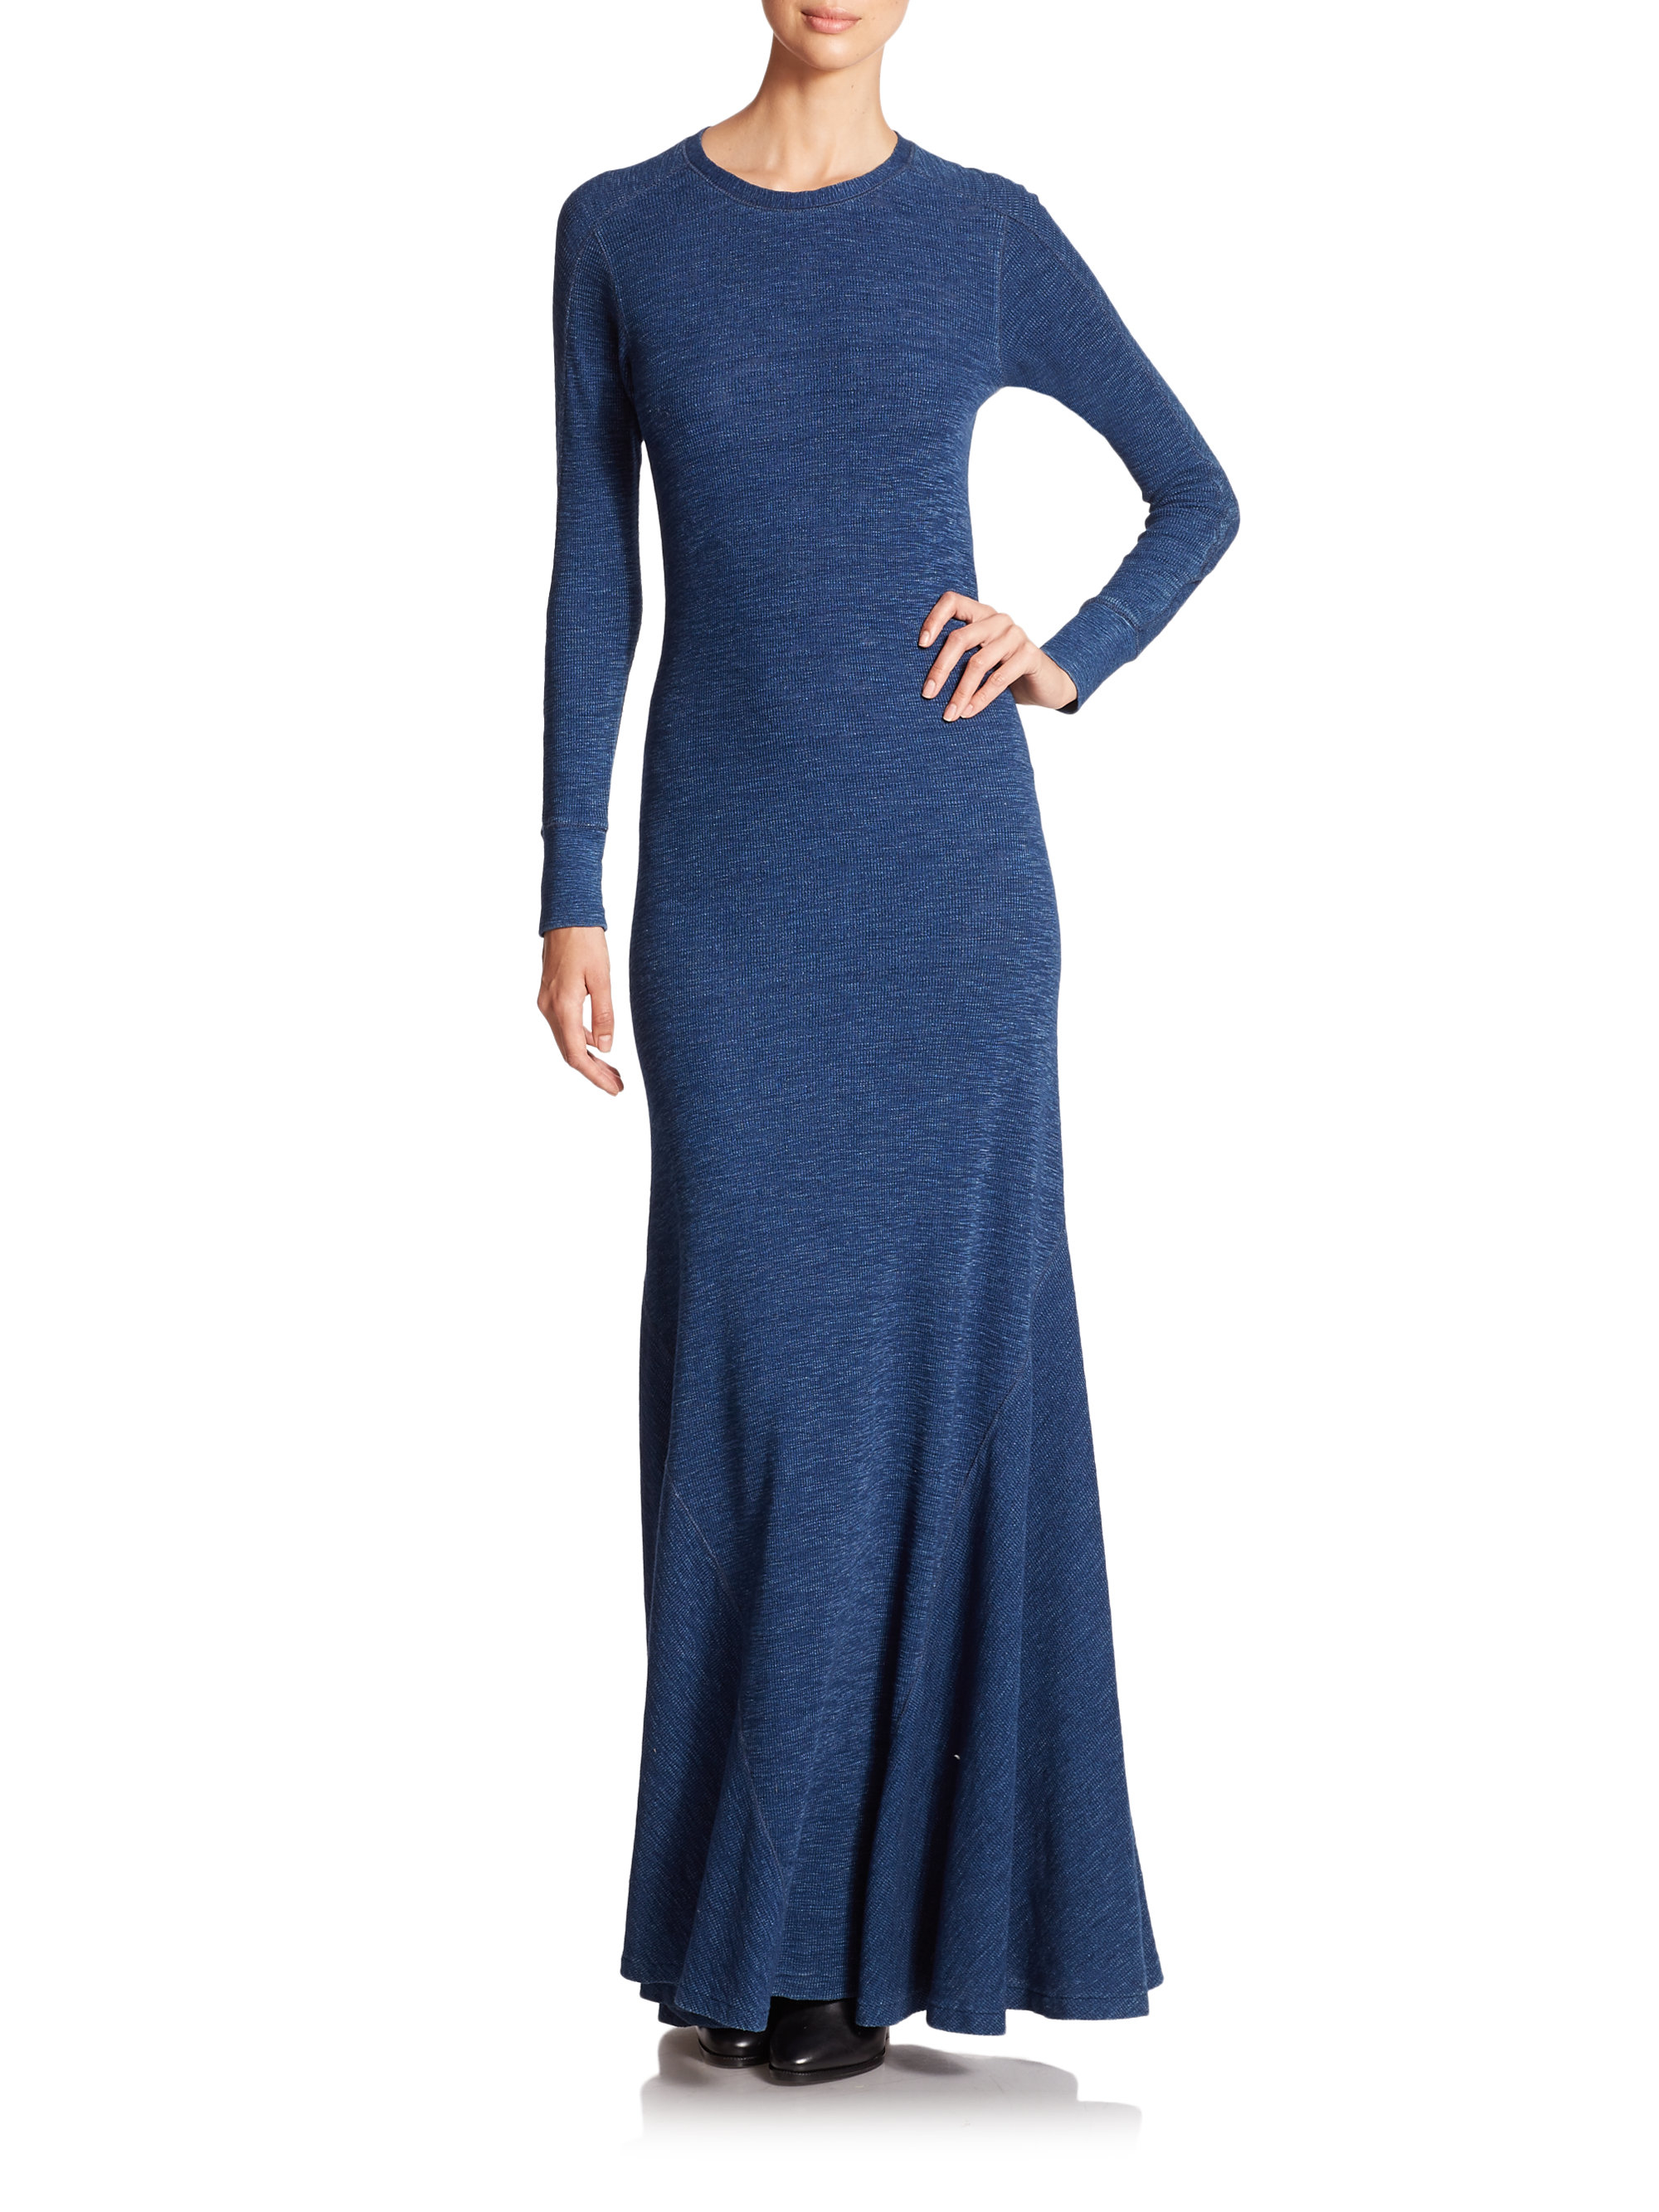 Polo ralph lauren Cotton Maxi Dress in Blue | Lyst